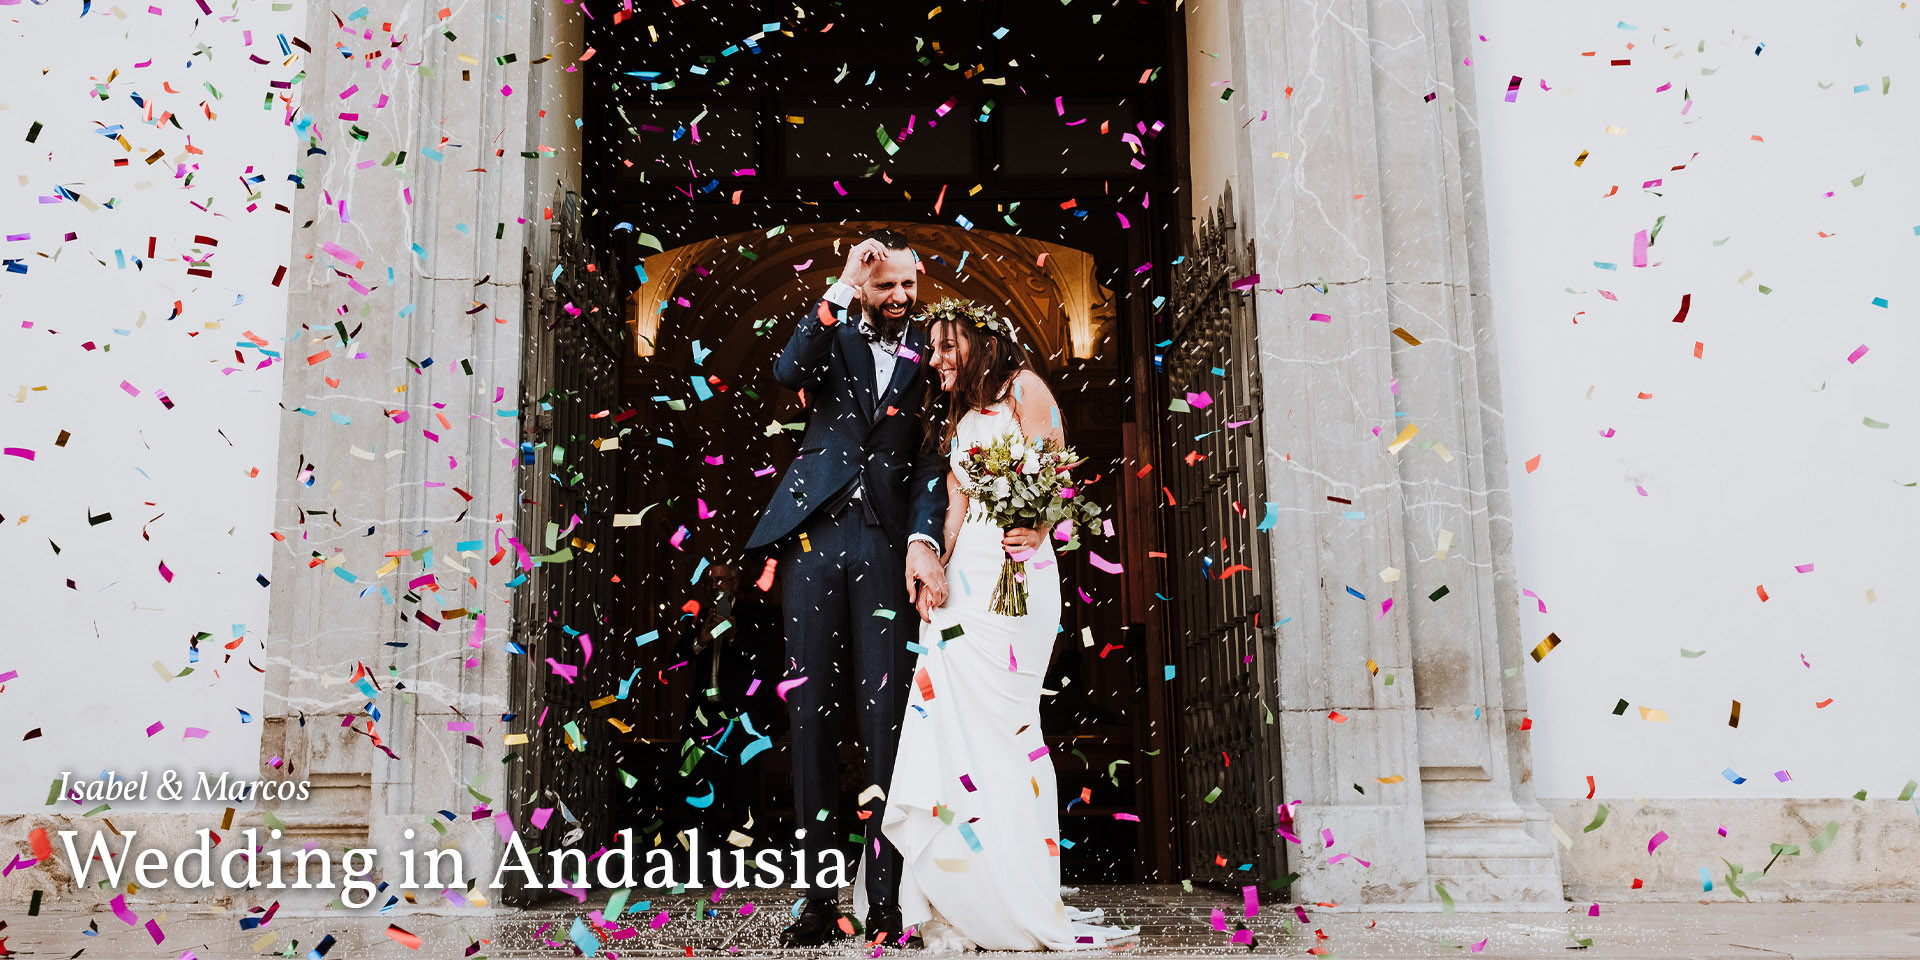 Love Wanderers - Wedding in Andalusia, Spain